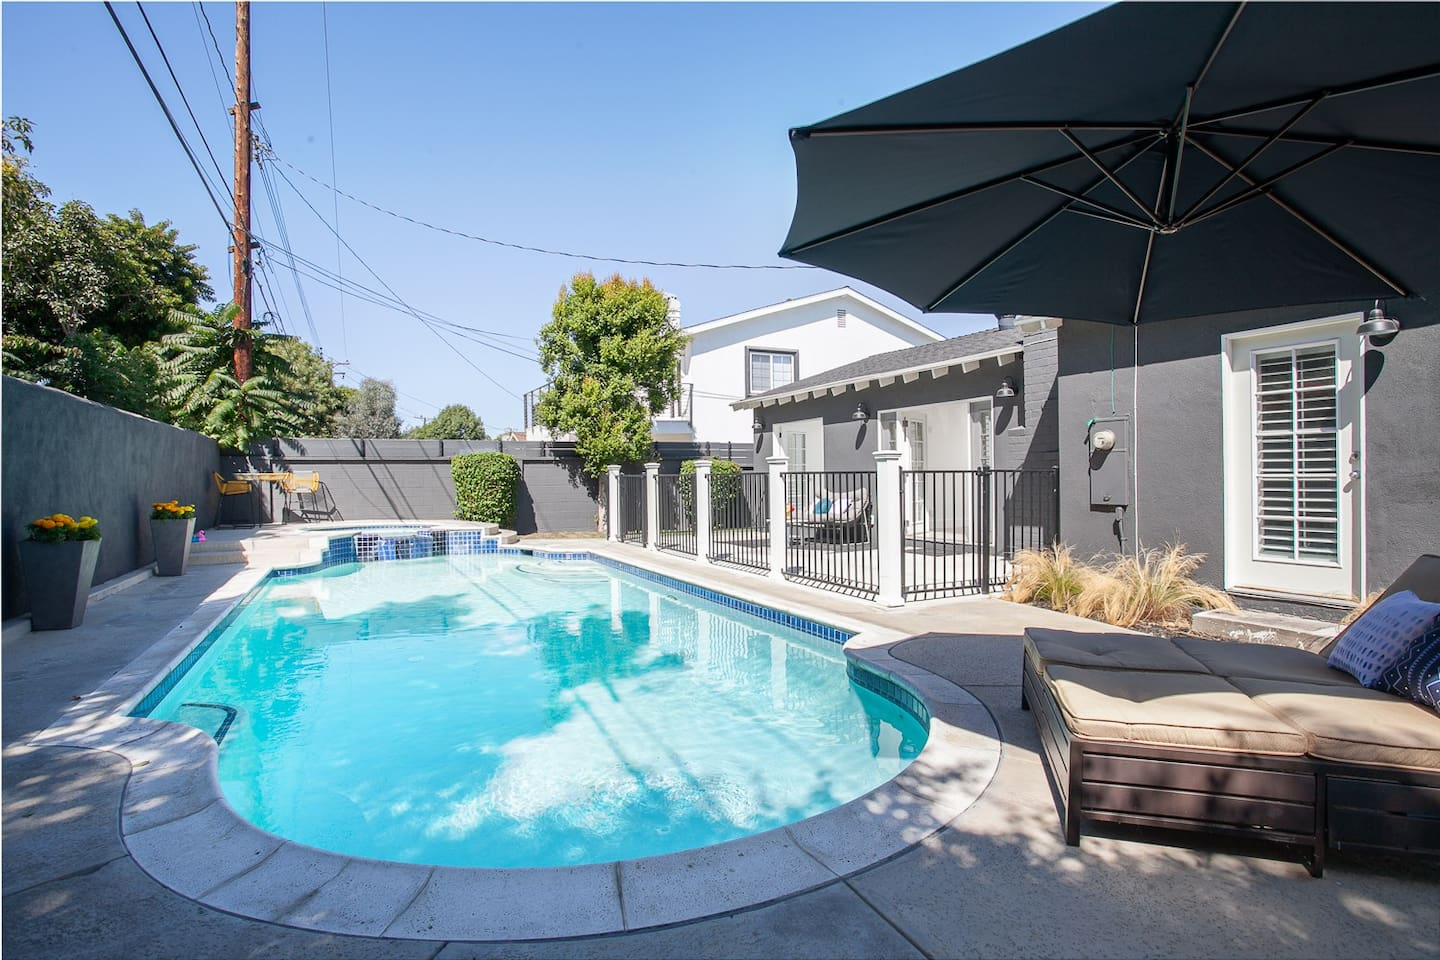 Pool and jacuzzi time in sunny California lasts all year long!! Have a drink  and relax in the day bed outside with friends and  family in the pool, jacuzzi, shade or sun!